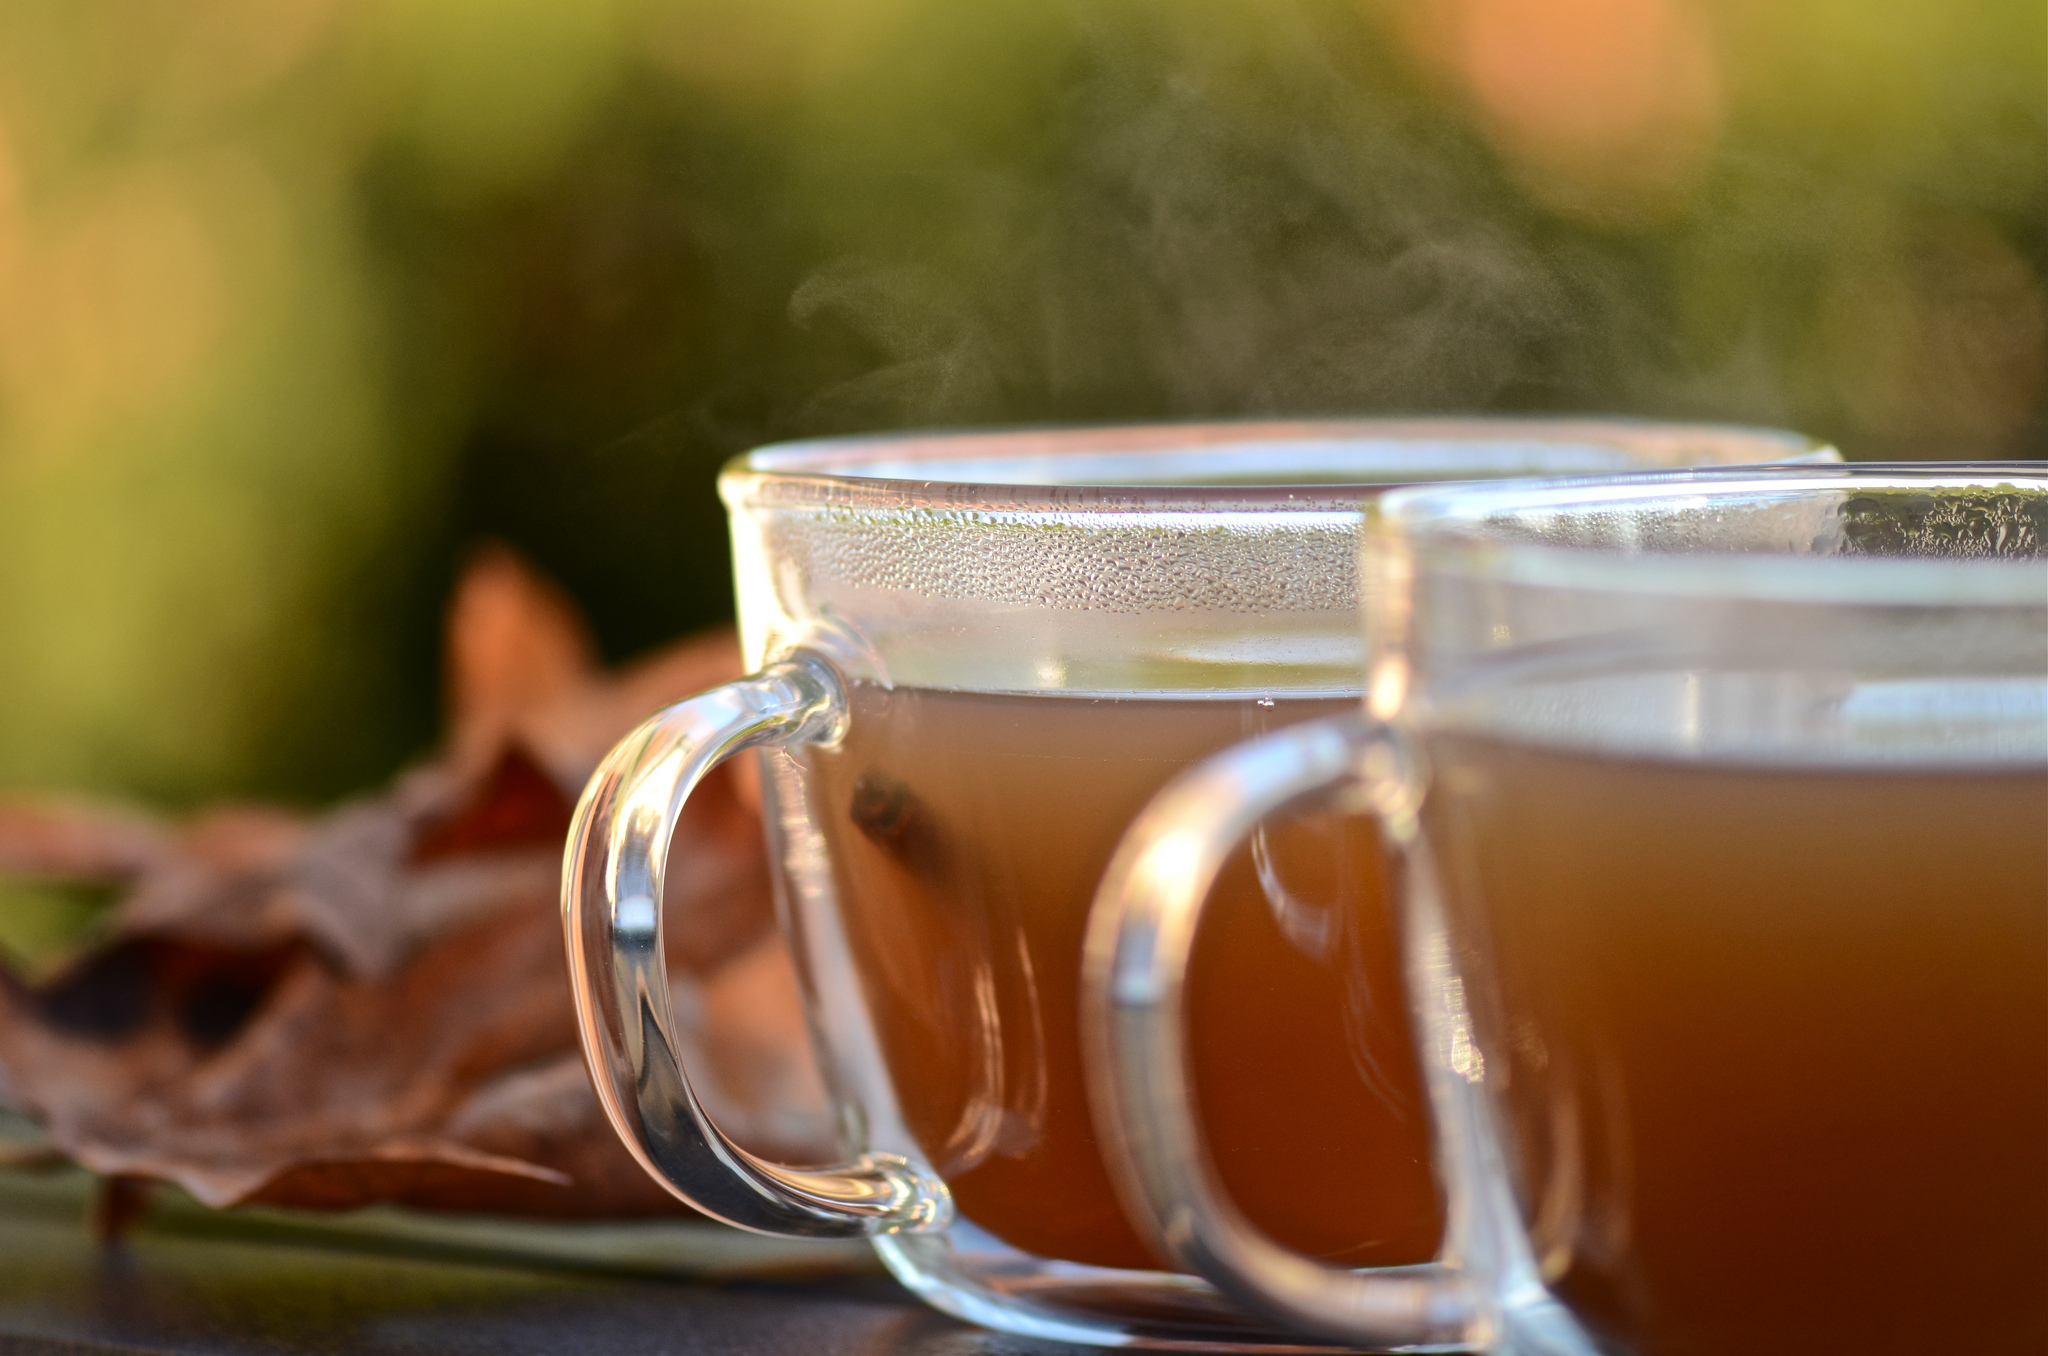 Hot apple cider with cinnamon sticks. [Photo: Jacqueline Sinclair]